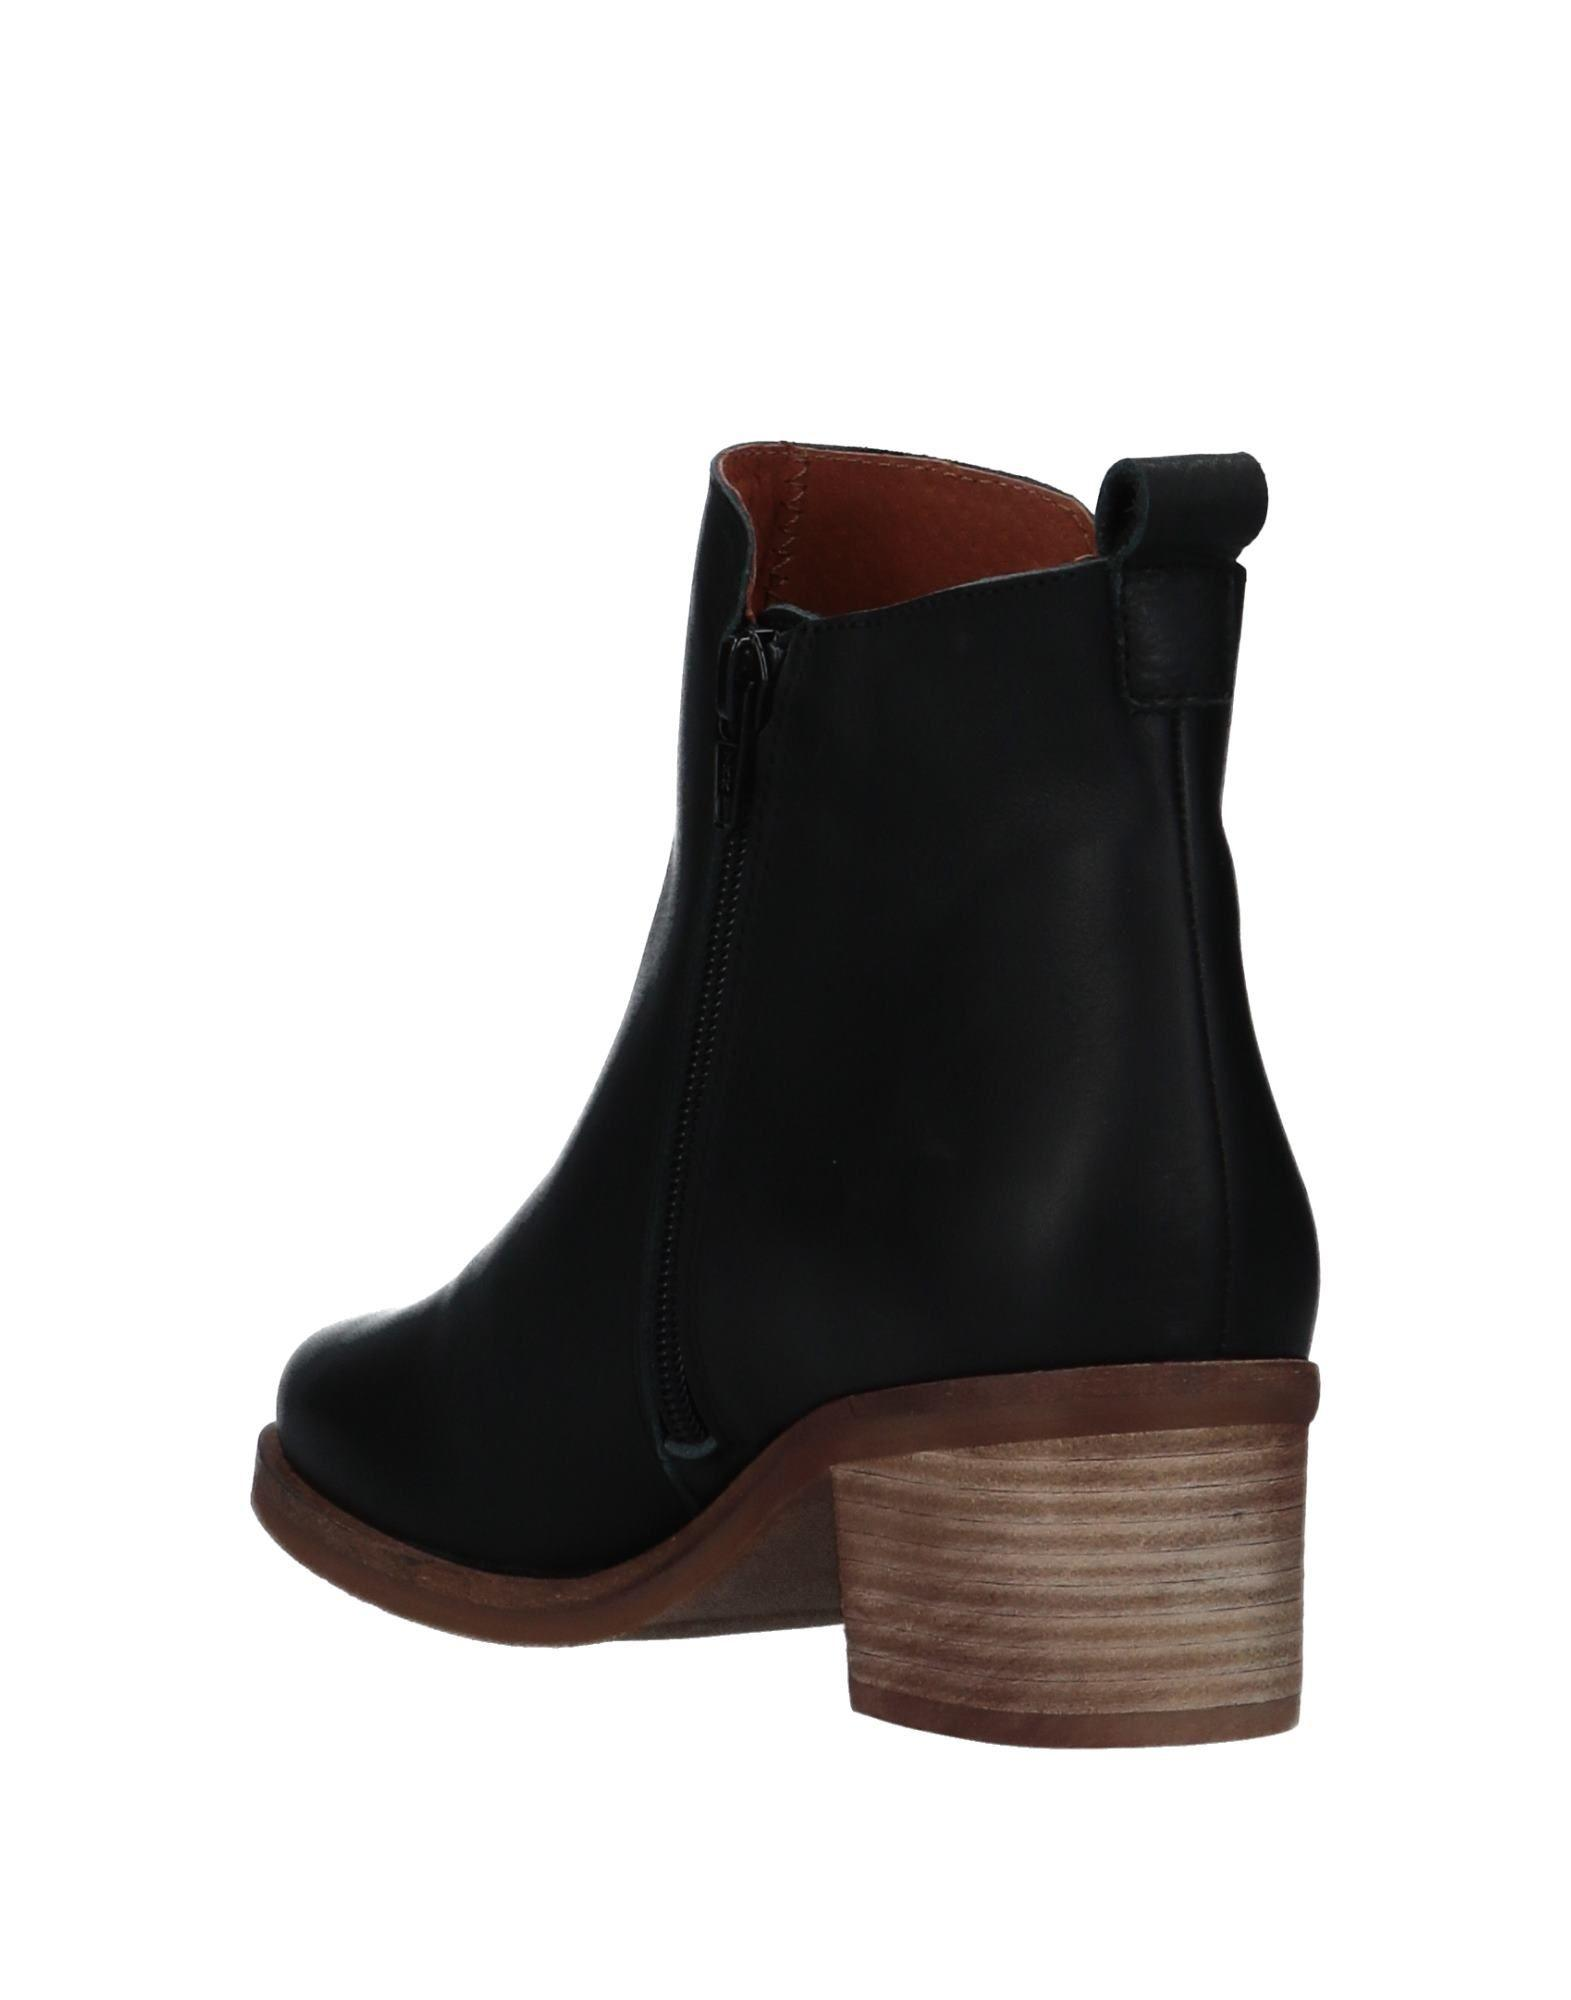 Sixtyseven Ankle Boots in Black - Lyst 43688d3a152